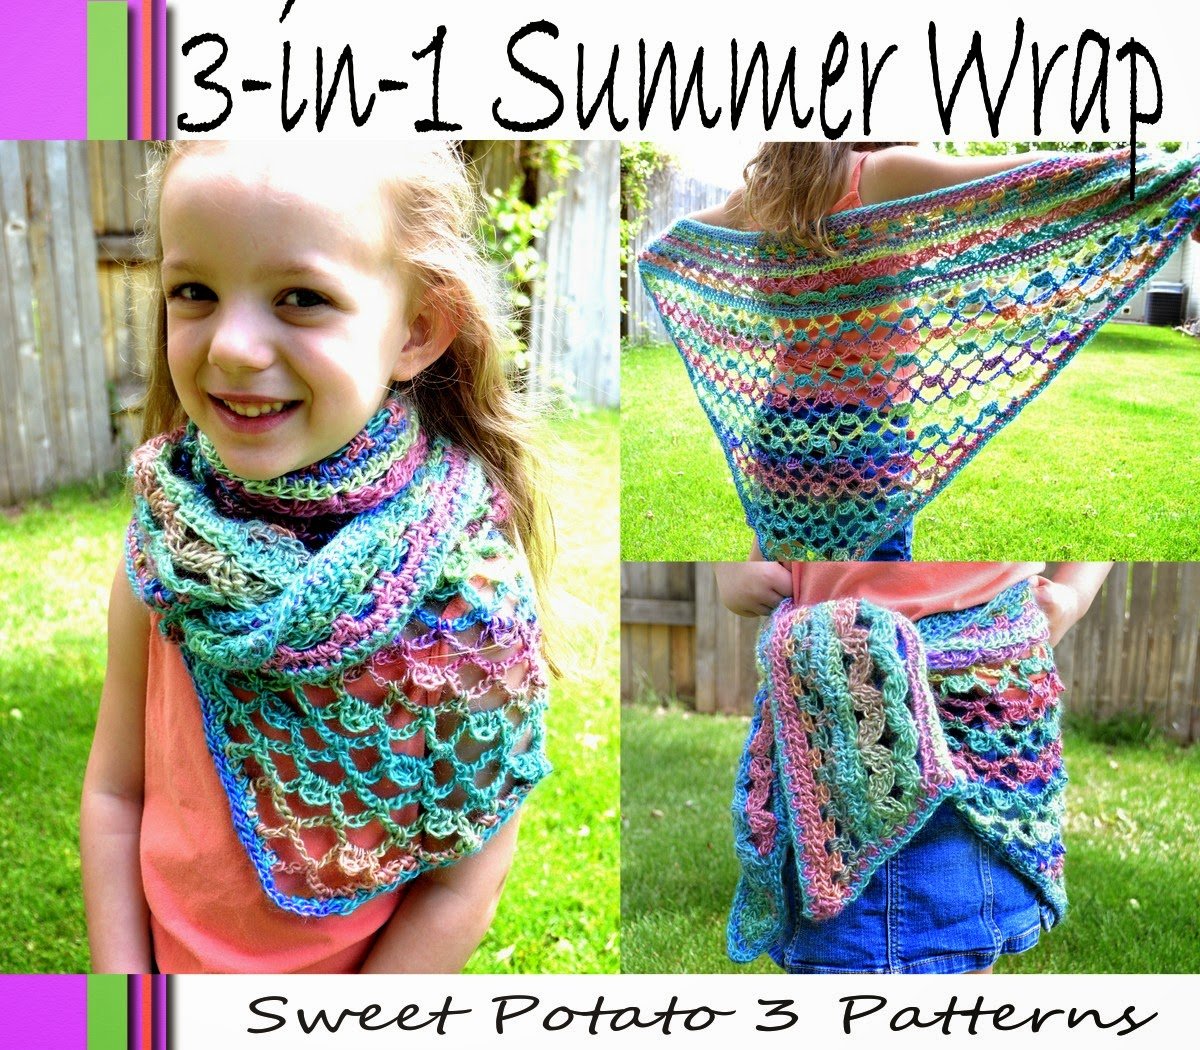 You are currently viewing 3-in-1 Summer Wrap Crochet Pattern